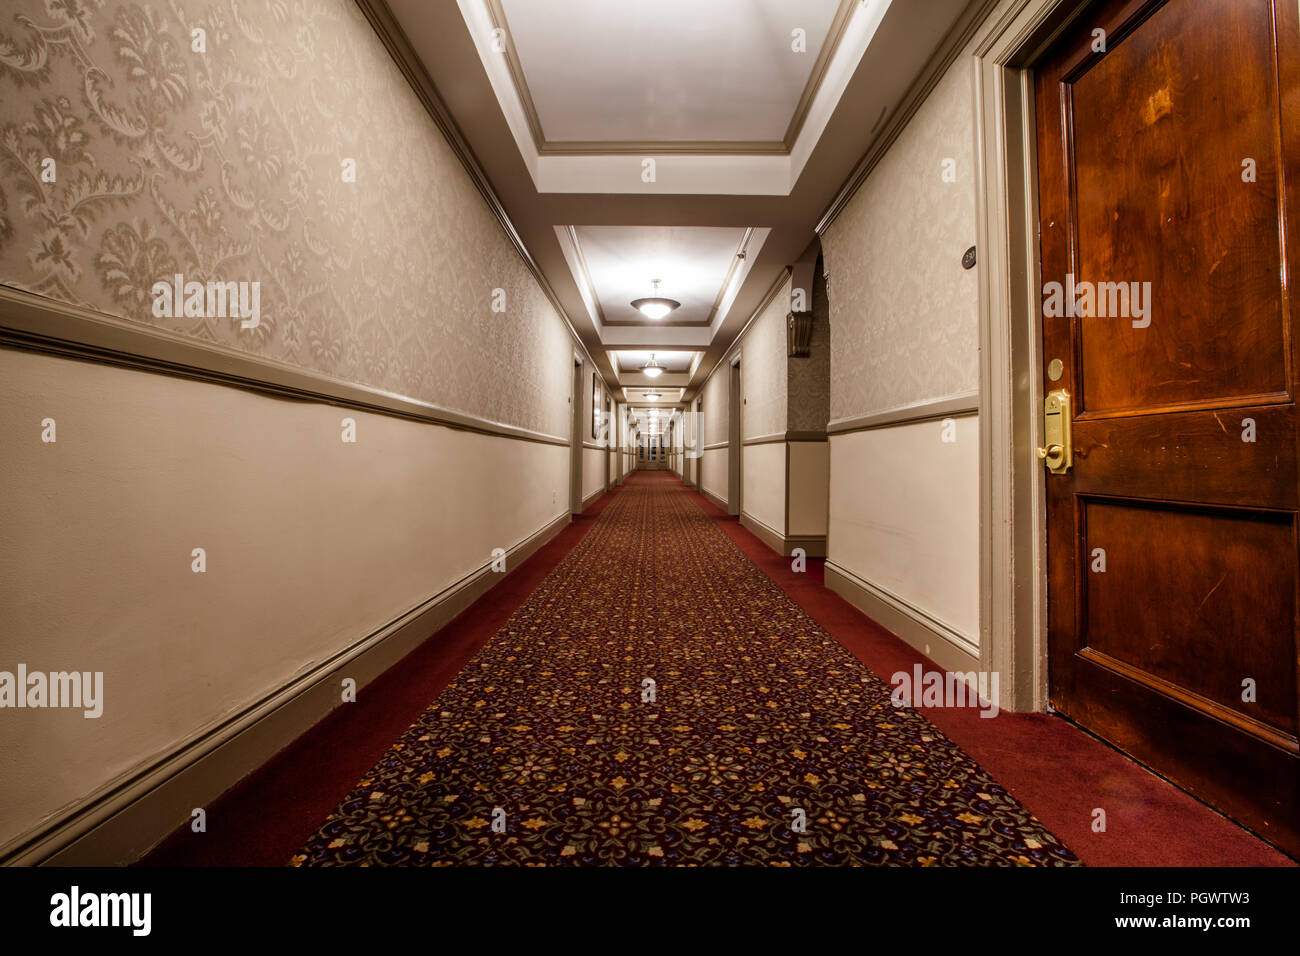 Hallway inside the famed Stanley Hotel in Estes Park, Colorado. The Hotel was noted to be the inspiration for Stephen King's novel 'The Shining' - Stock Image